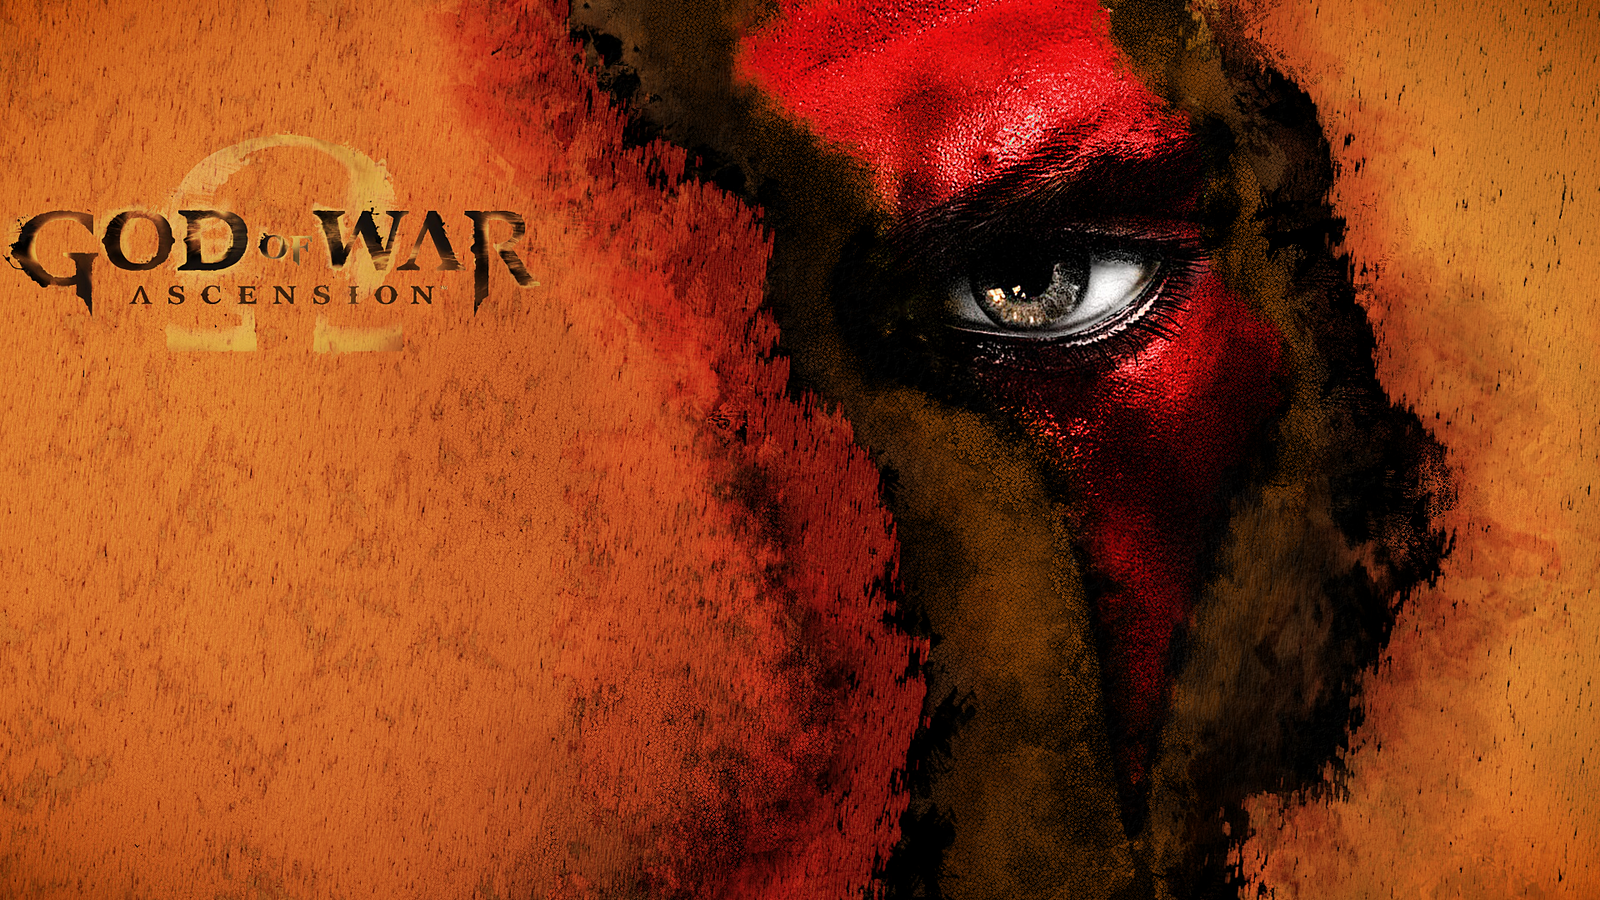 God of war ascension wallpaper 1920 x 1080 by dragunowx on deviantart god of war ascension wallpaper 1920 x 1080 by dragunowx voltagebd Image collections